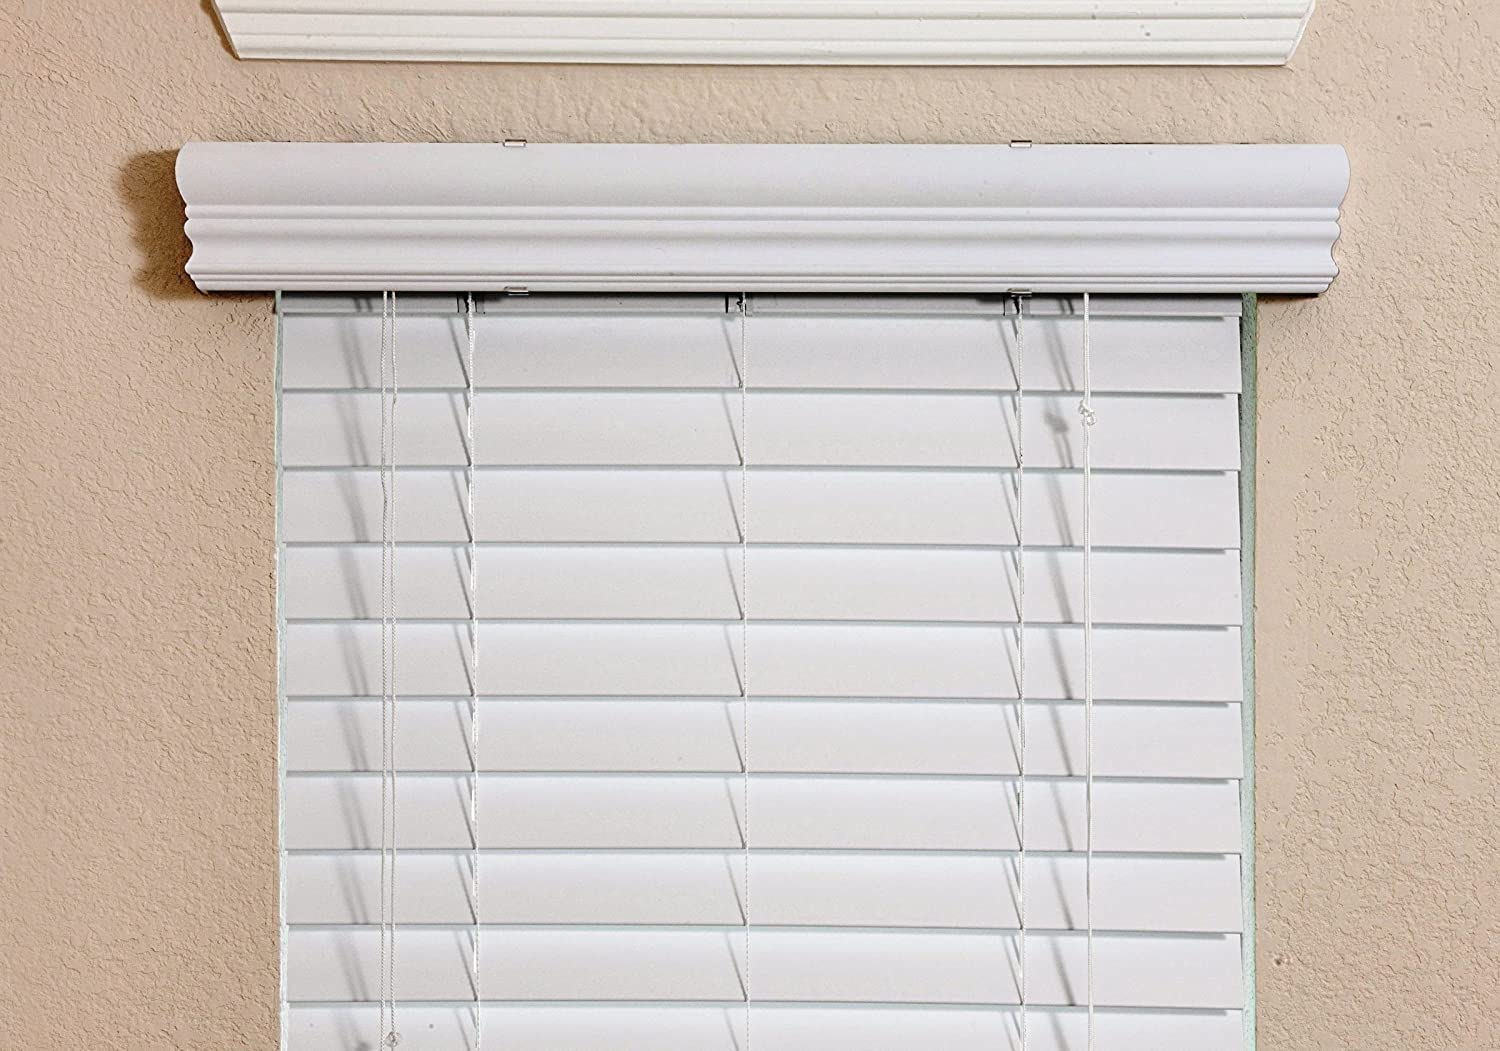 36 inch window blinds - Amazon Com Fauxwood Impressions 36002250 23 Inch By 36 Inch Window Blinds White Home Kitchen